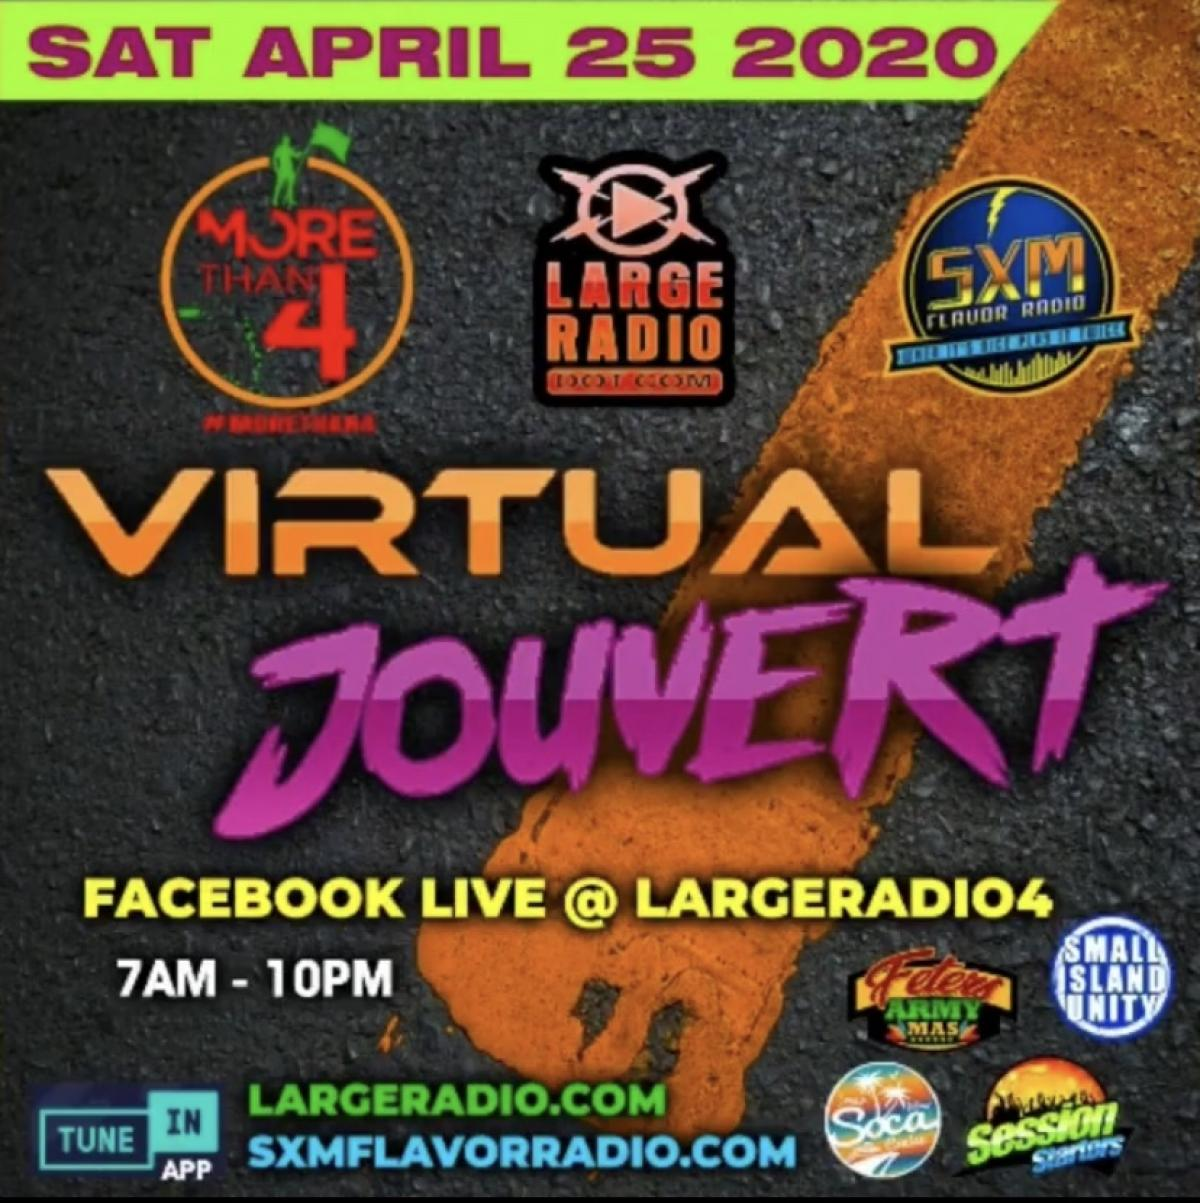 Virtual Jouvert flyer or graphic.